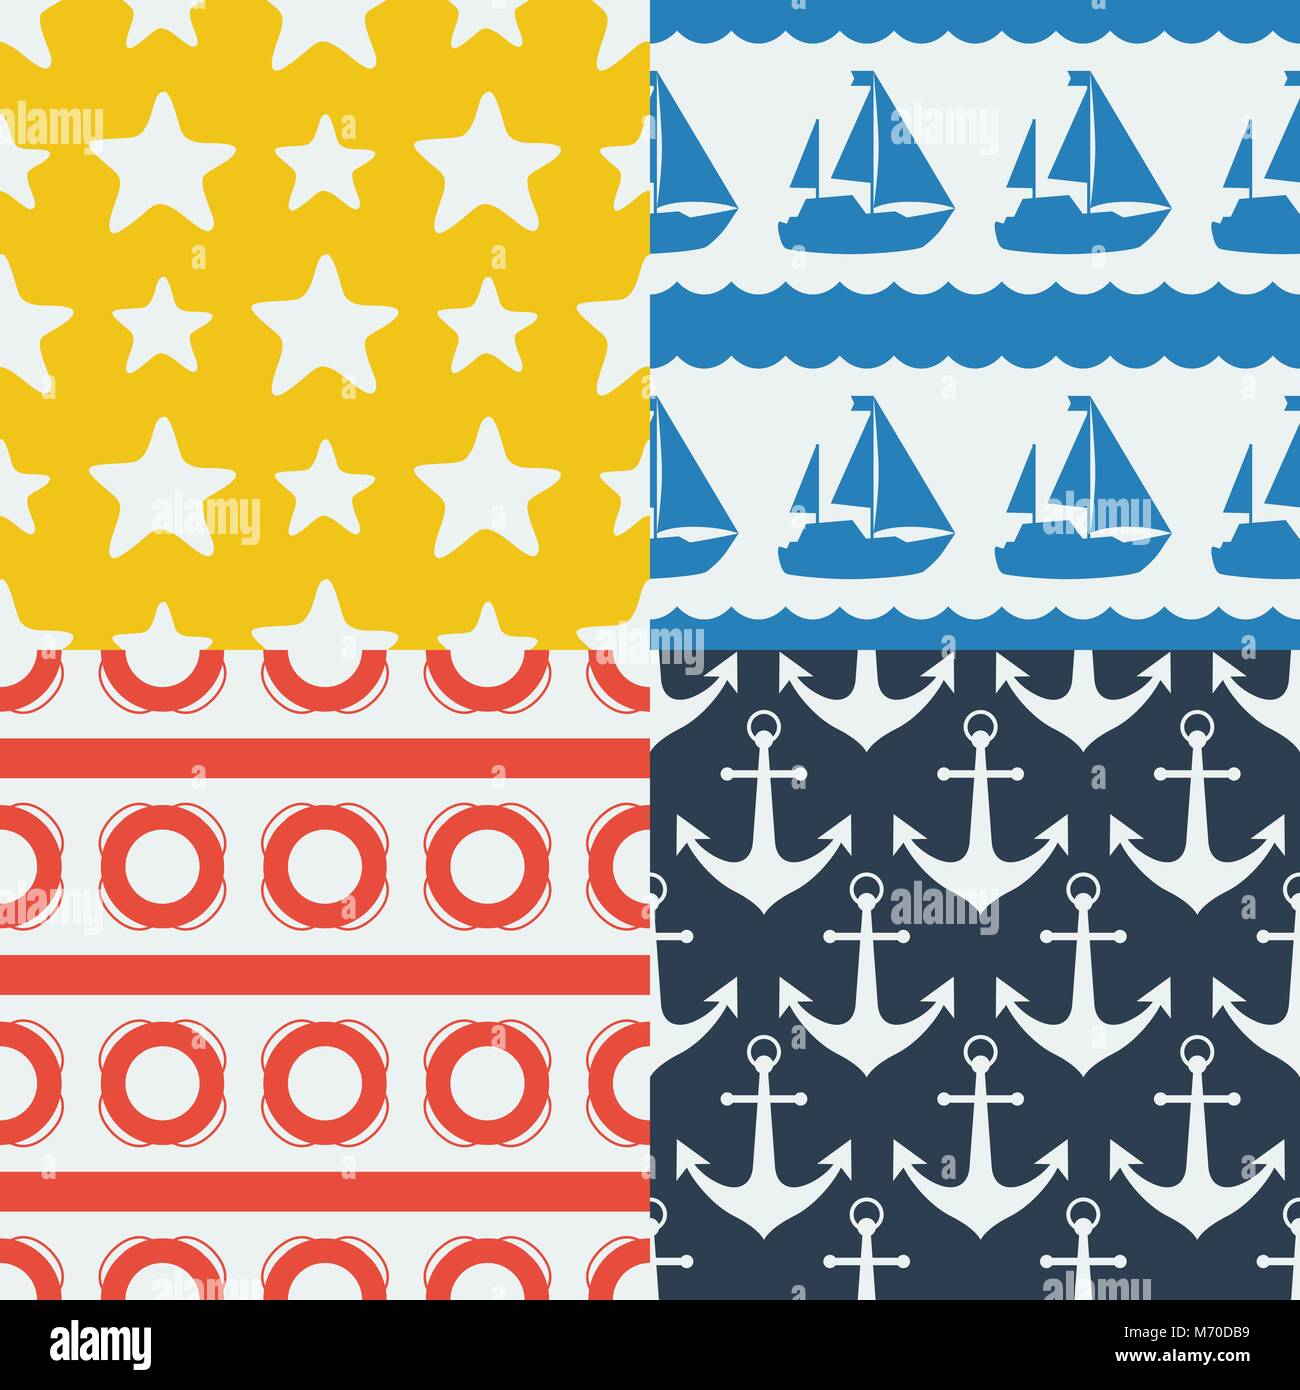 Nautical seamless patterns set in flat design style - Stock Image